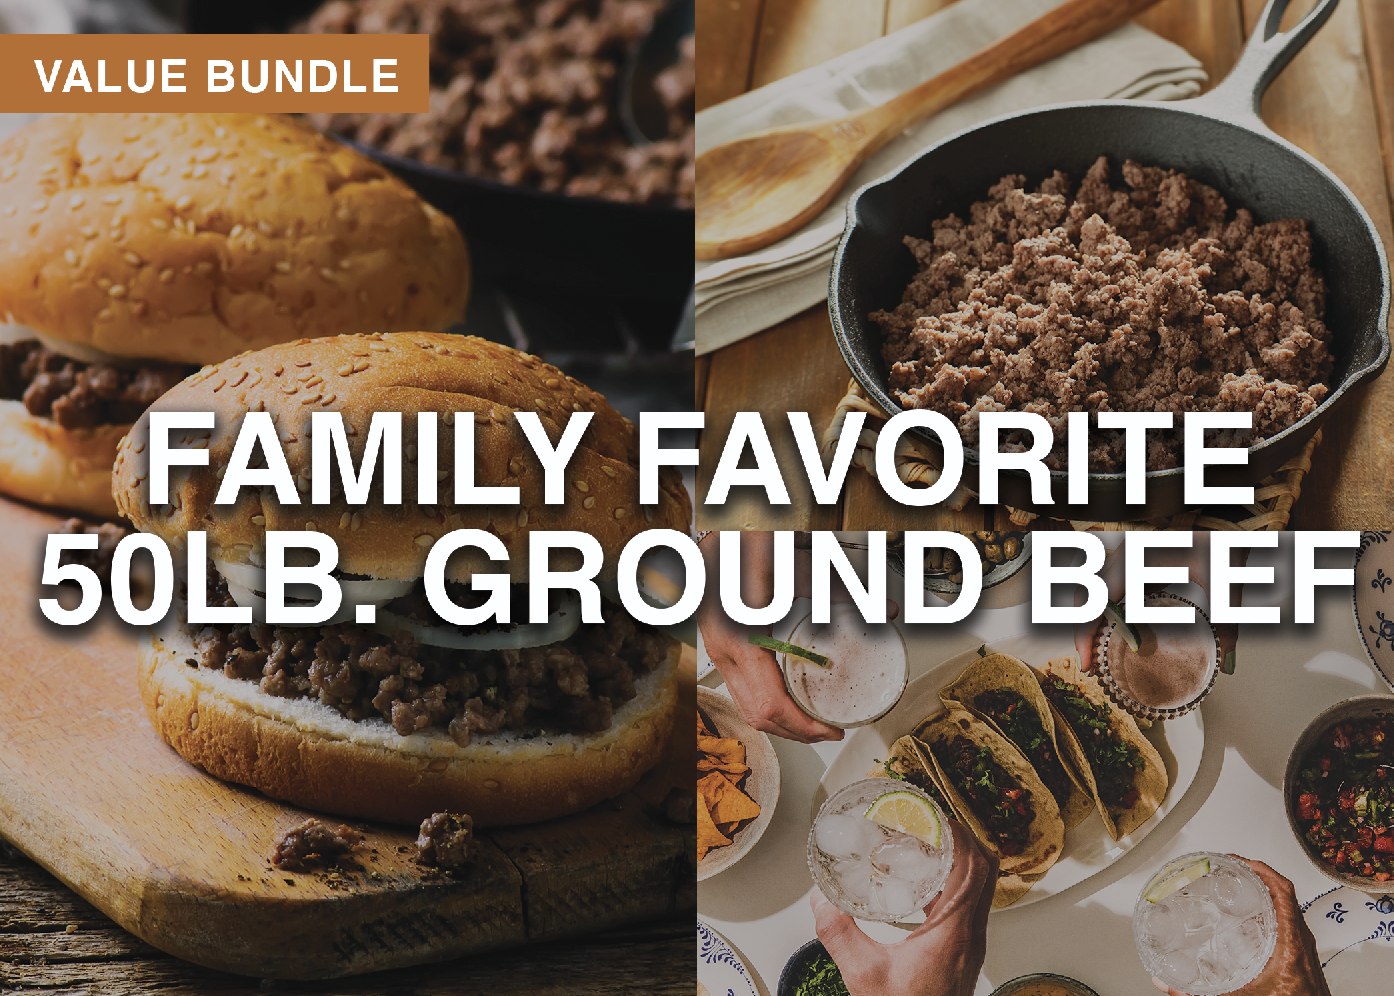 Family Favorite 50lb Ground Beef Bundle